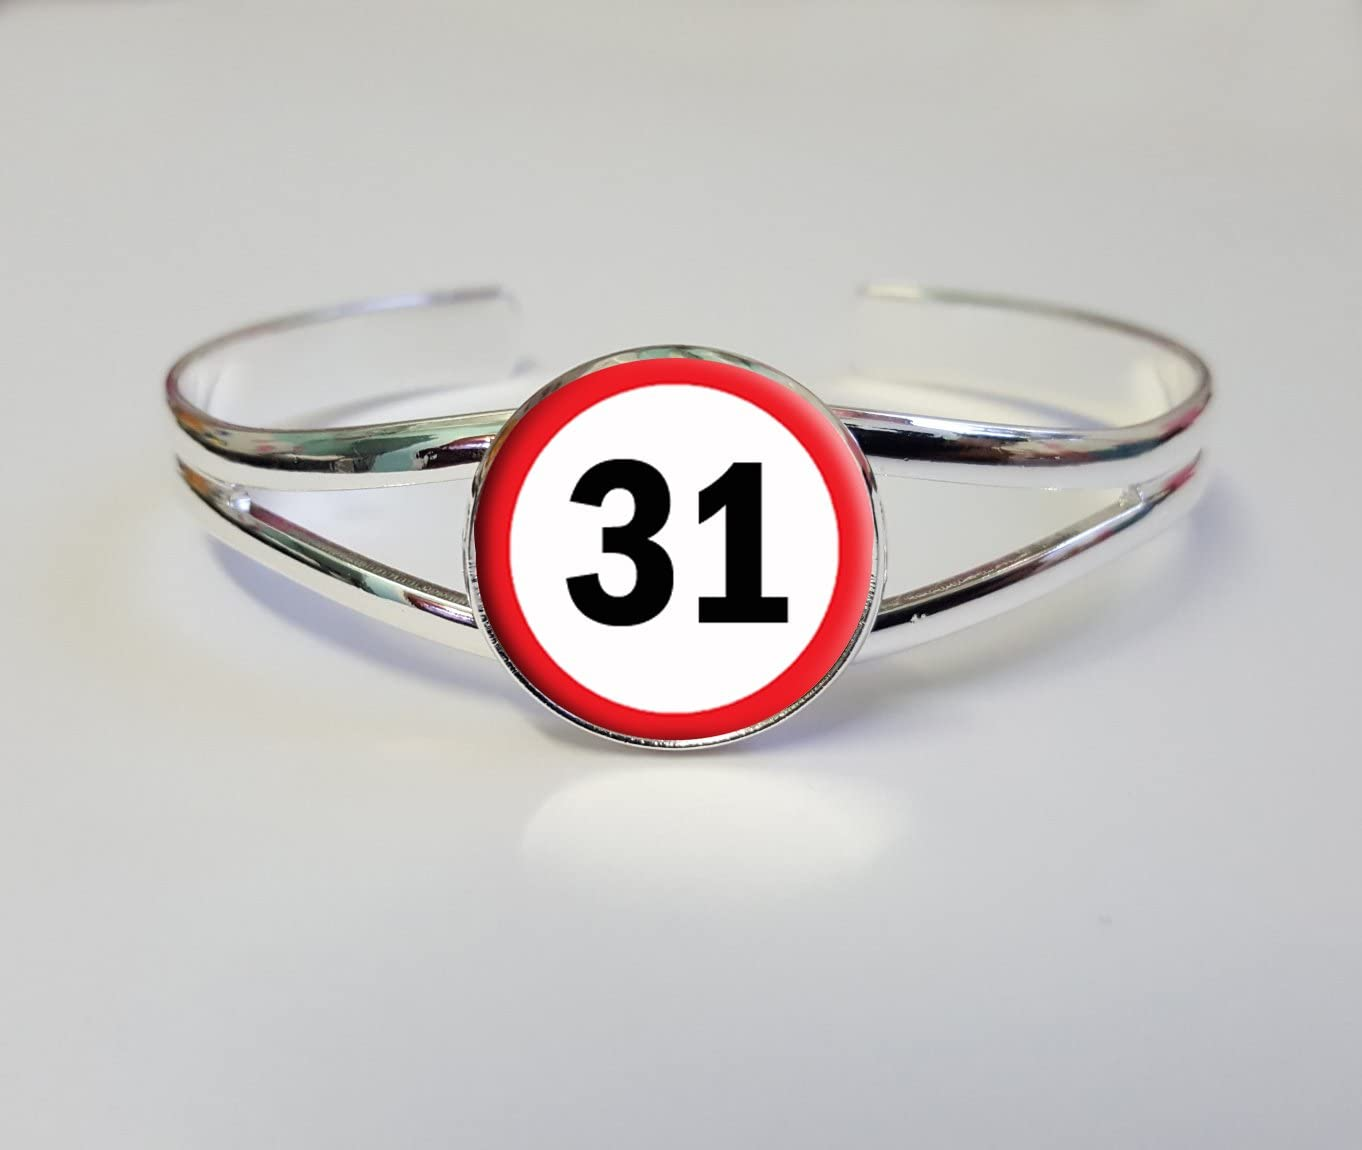 31 Road Sign On A Silver Plated Bracelet Bangle Costume Jewellery Ideal Ladies 31st Birthday Gift L303